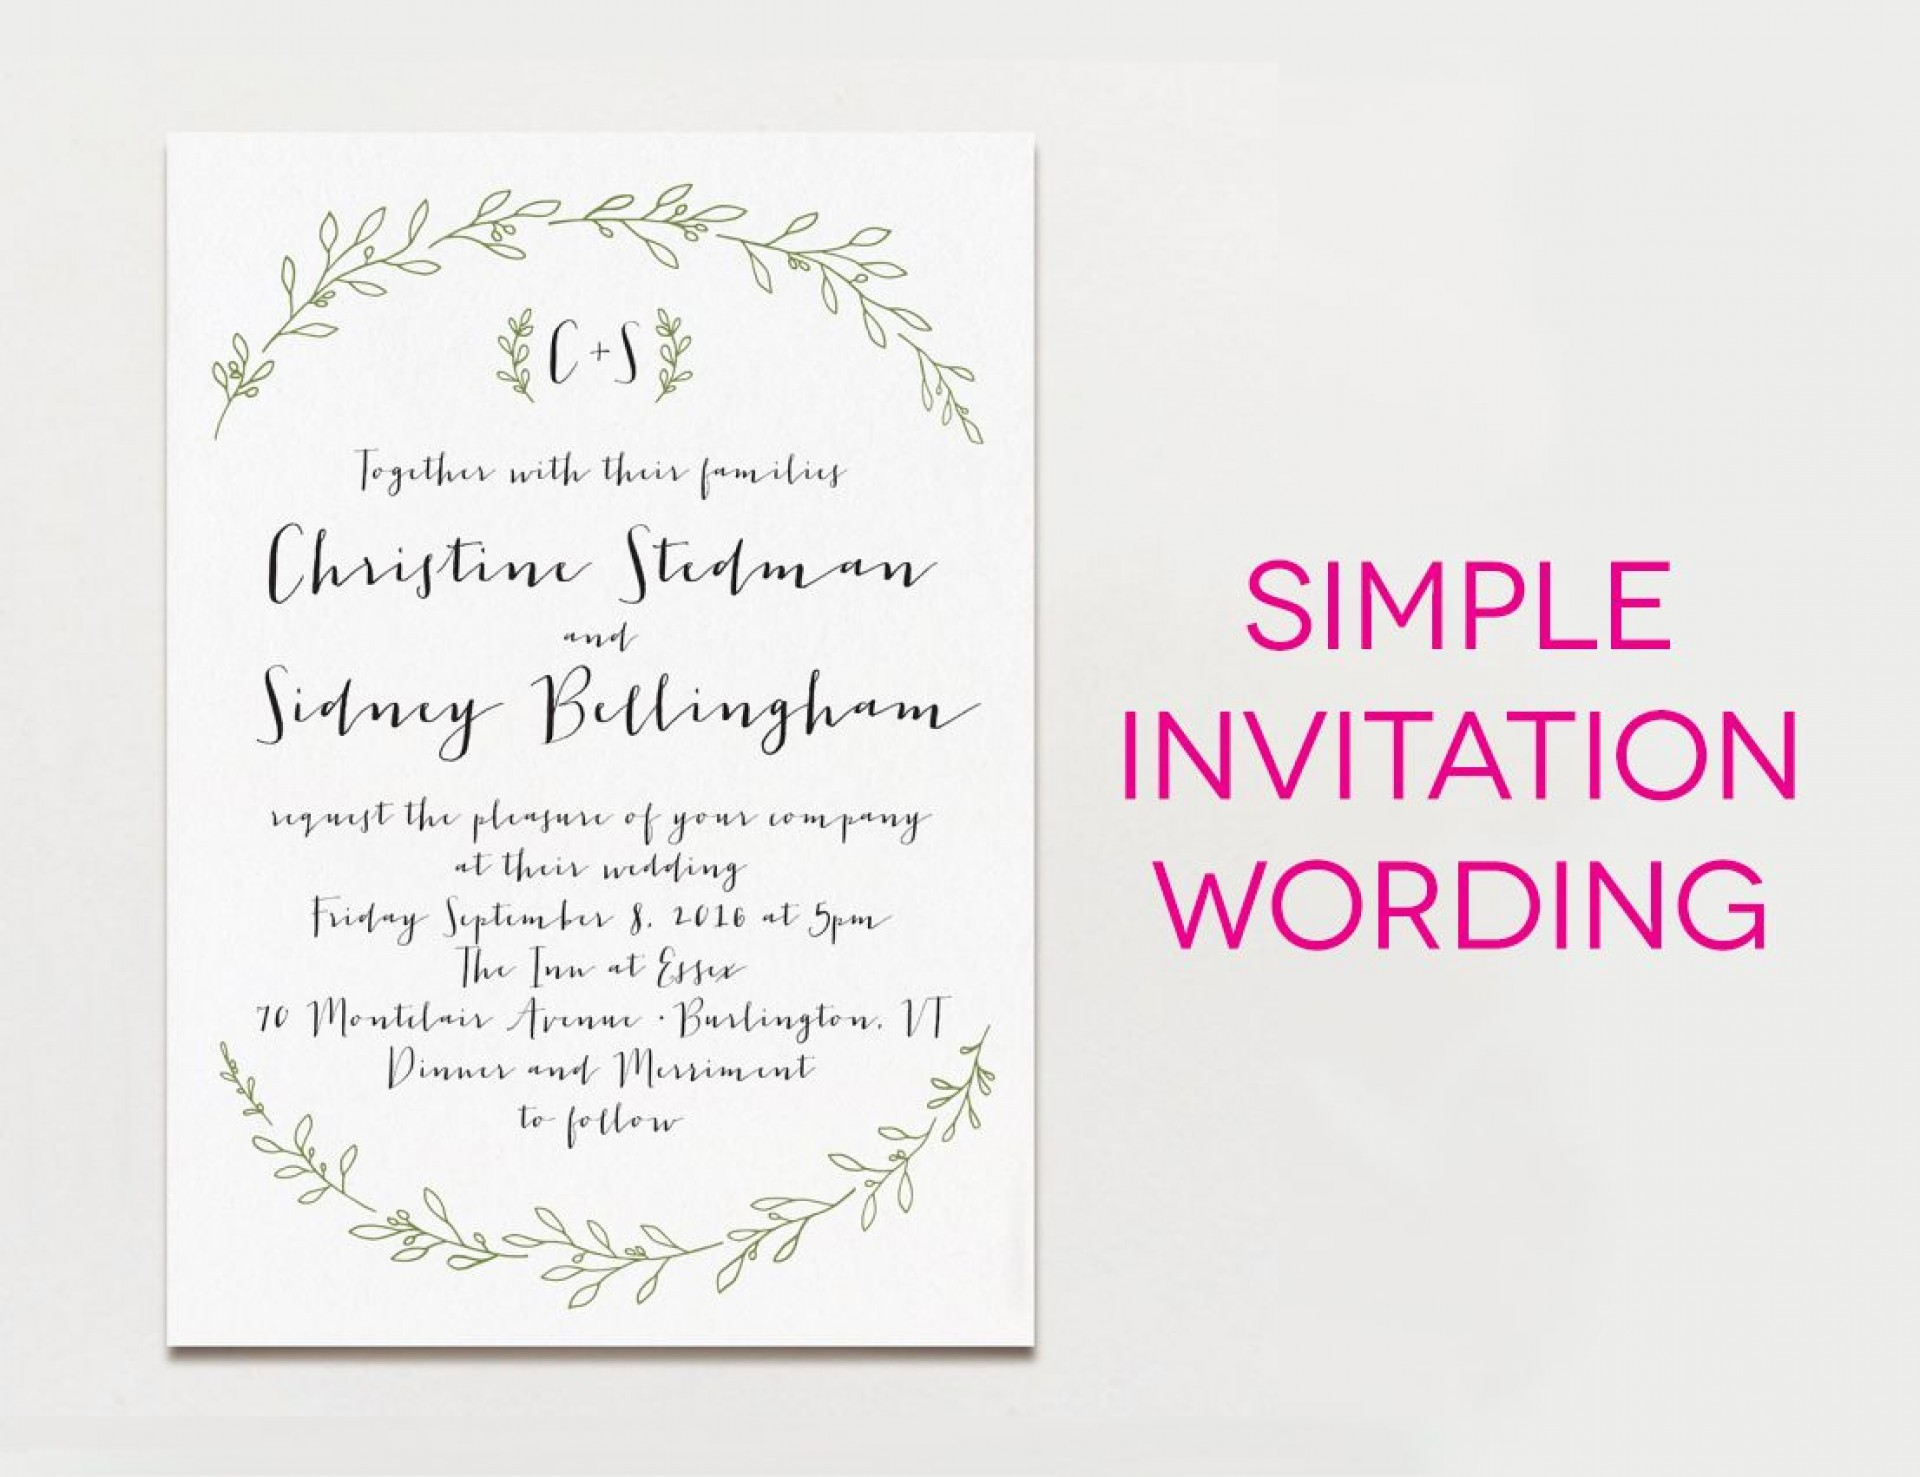 000 Stupendou Wedding Invite Wording Template Photo  Templates Chinese Invitation Microsoft Word From Bride And Groom Example Inviting1920